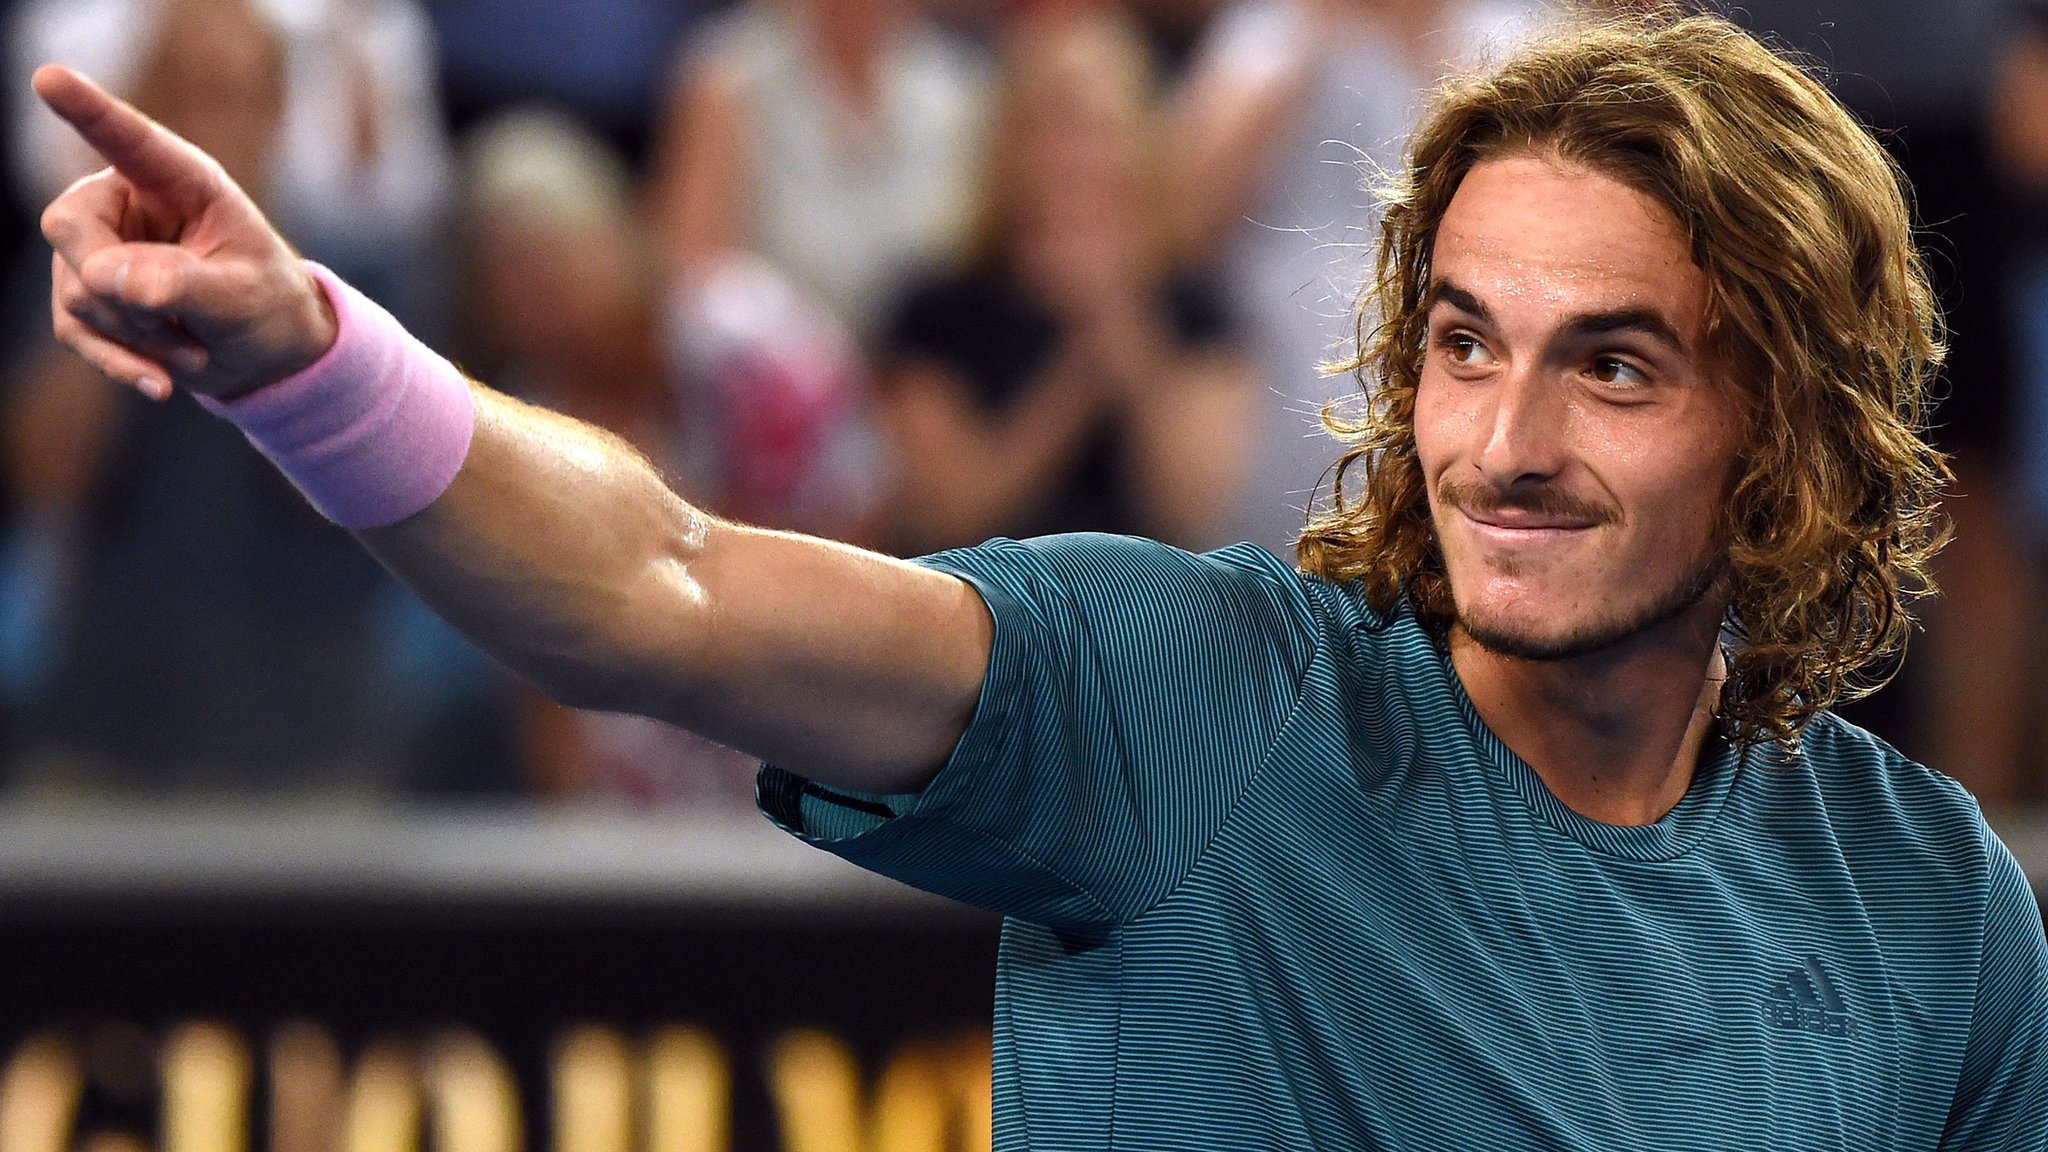 Australian Open 2019: Stefanos Tsitsipas relishing match against idol Roger Federer